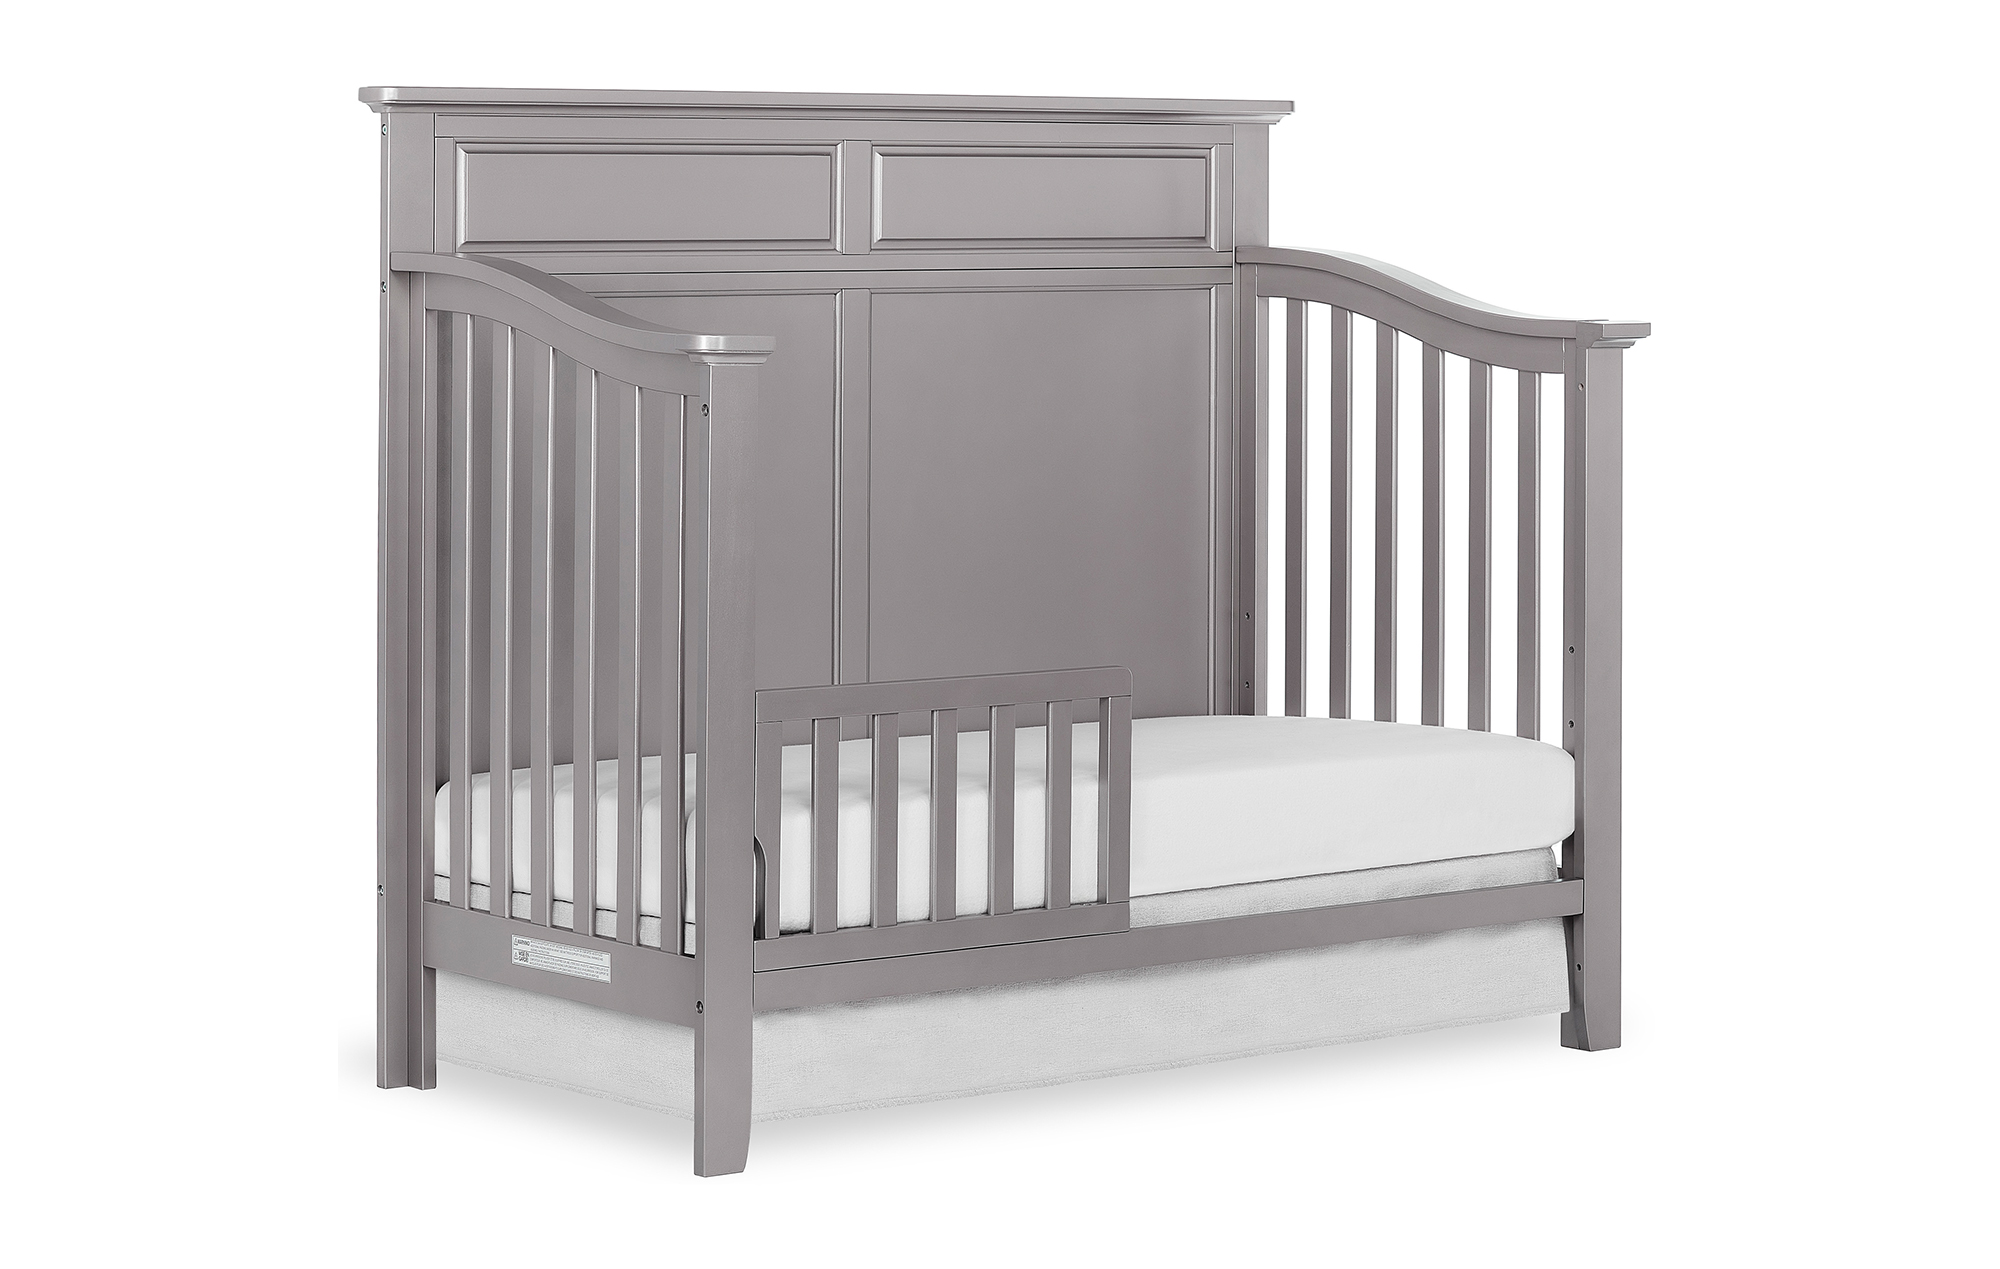 774-MGREY Fairview Toddler Bed